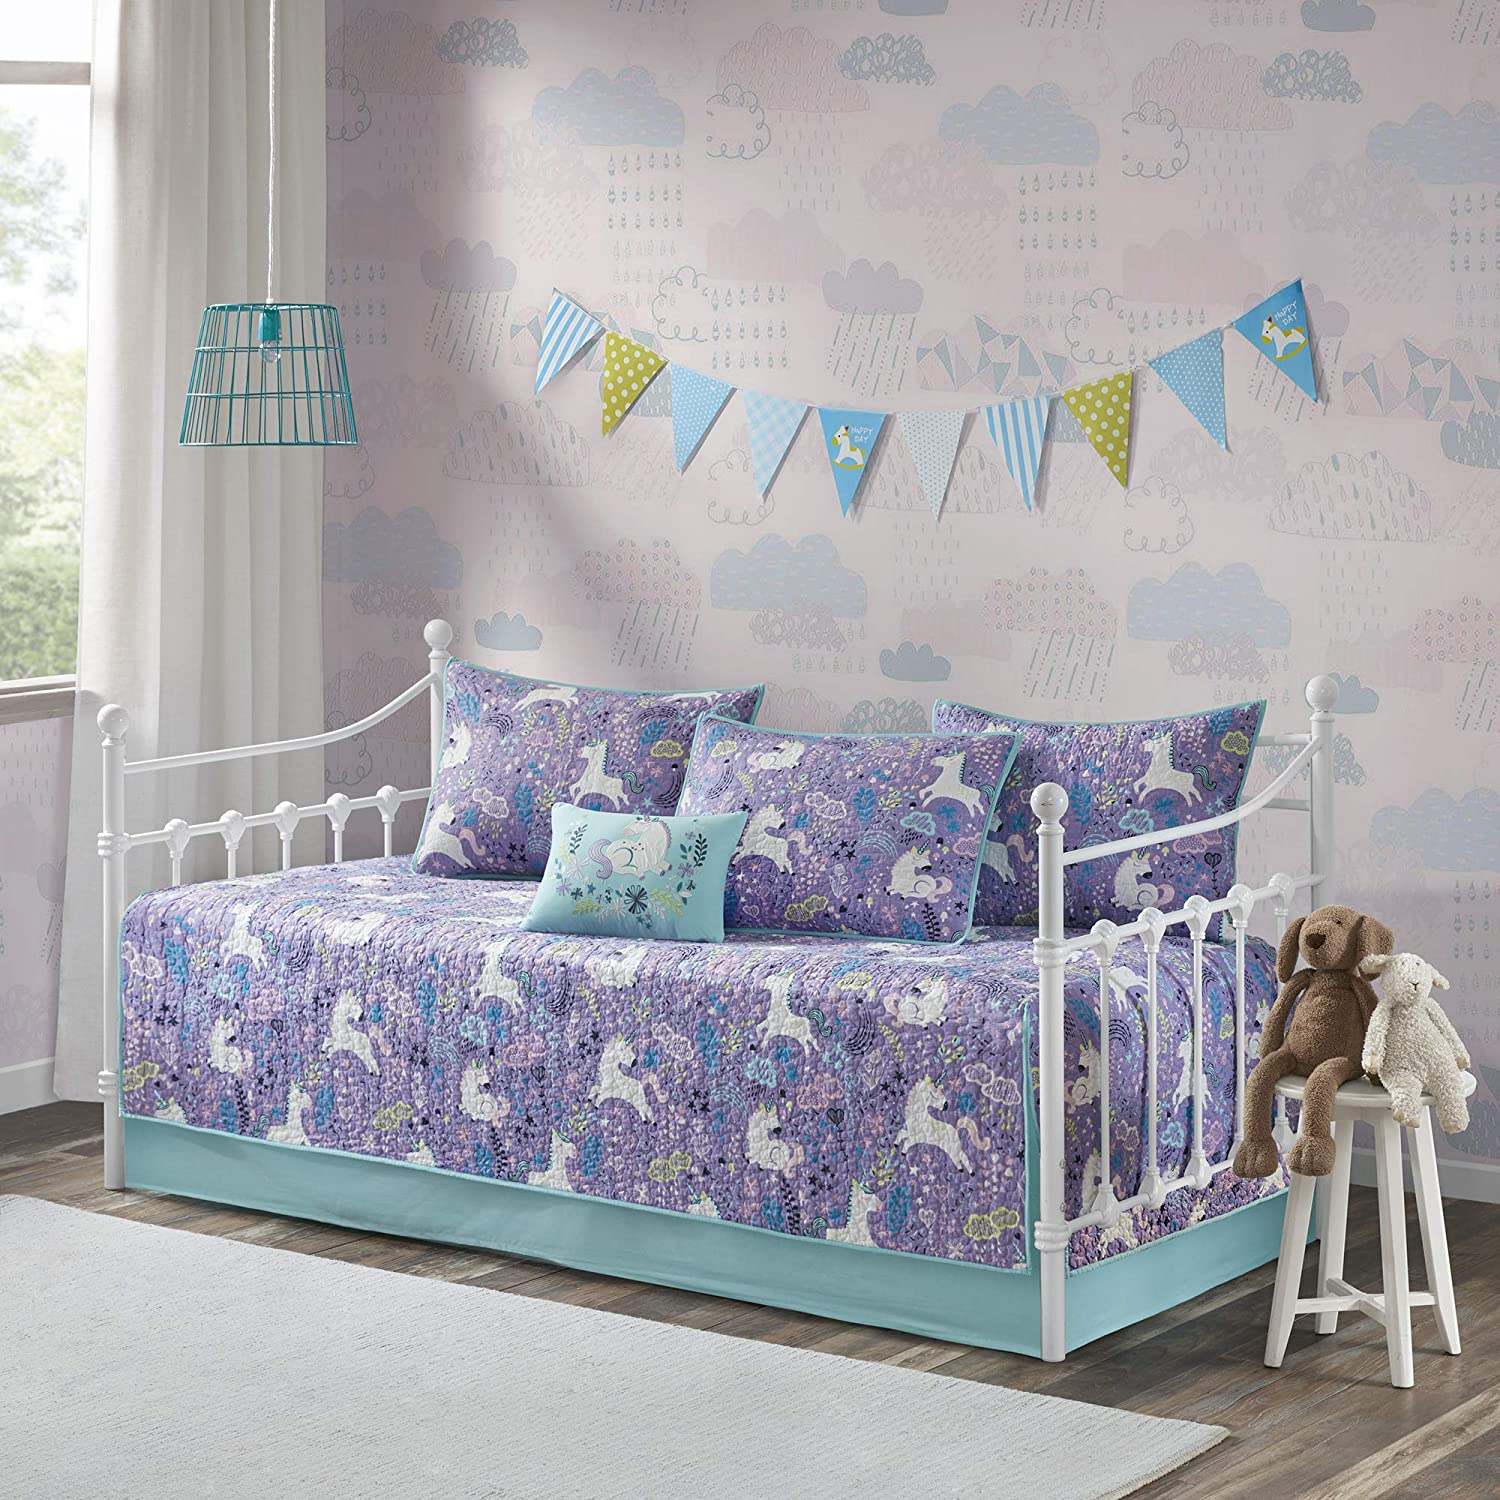 Urban Habitat Kids Lola Daybed Cover Reversible Cotton Unicorn Flower Botanical Printed Quilt Embroidered Pillow Down Alternative Hypoallergenic All Season Coverlet Bedding-Set, Purple